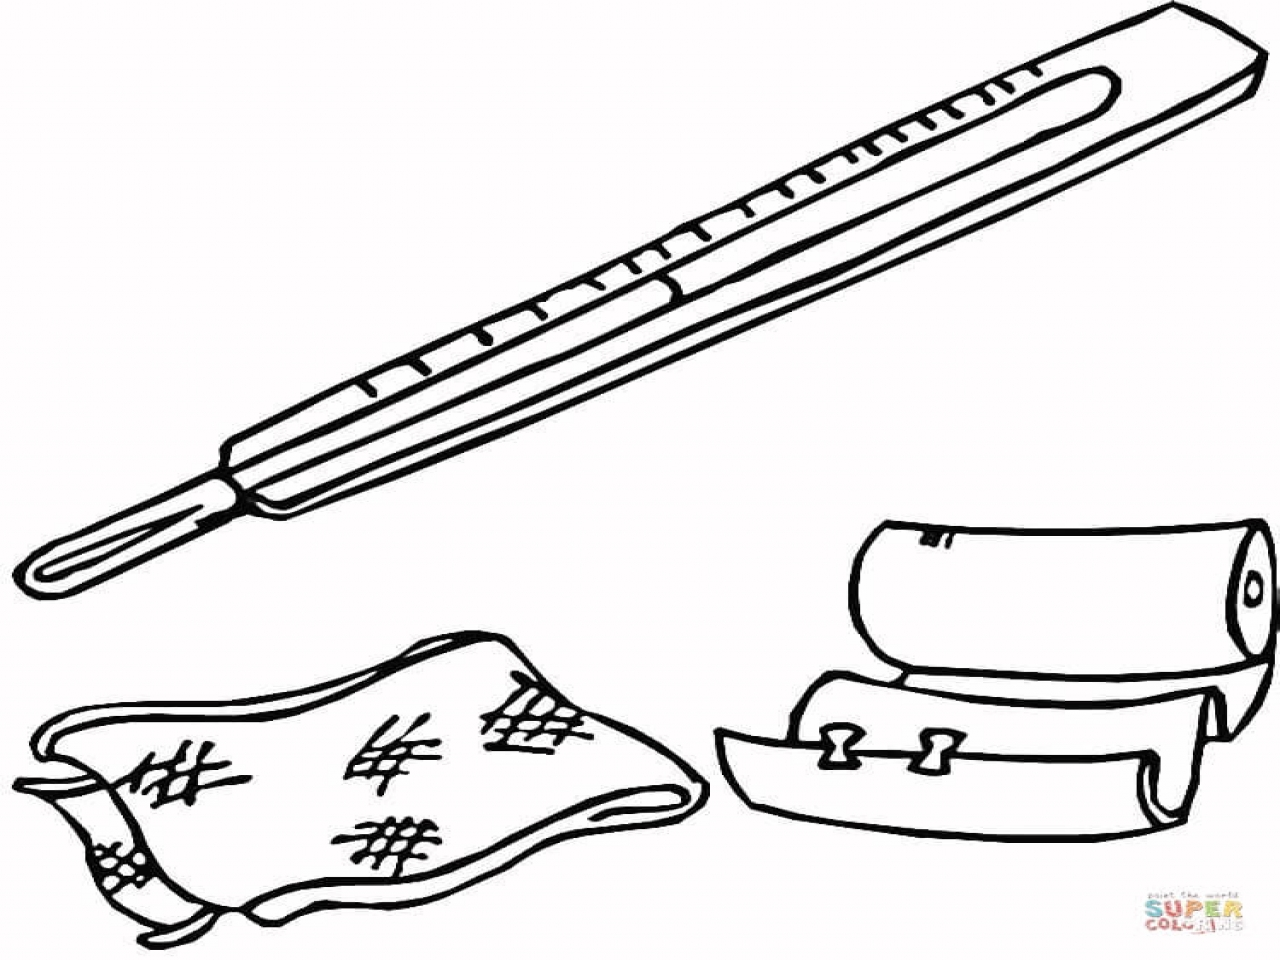 First Aid Kit Coloring Page At Getcolorings